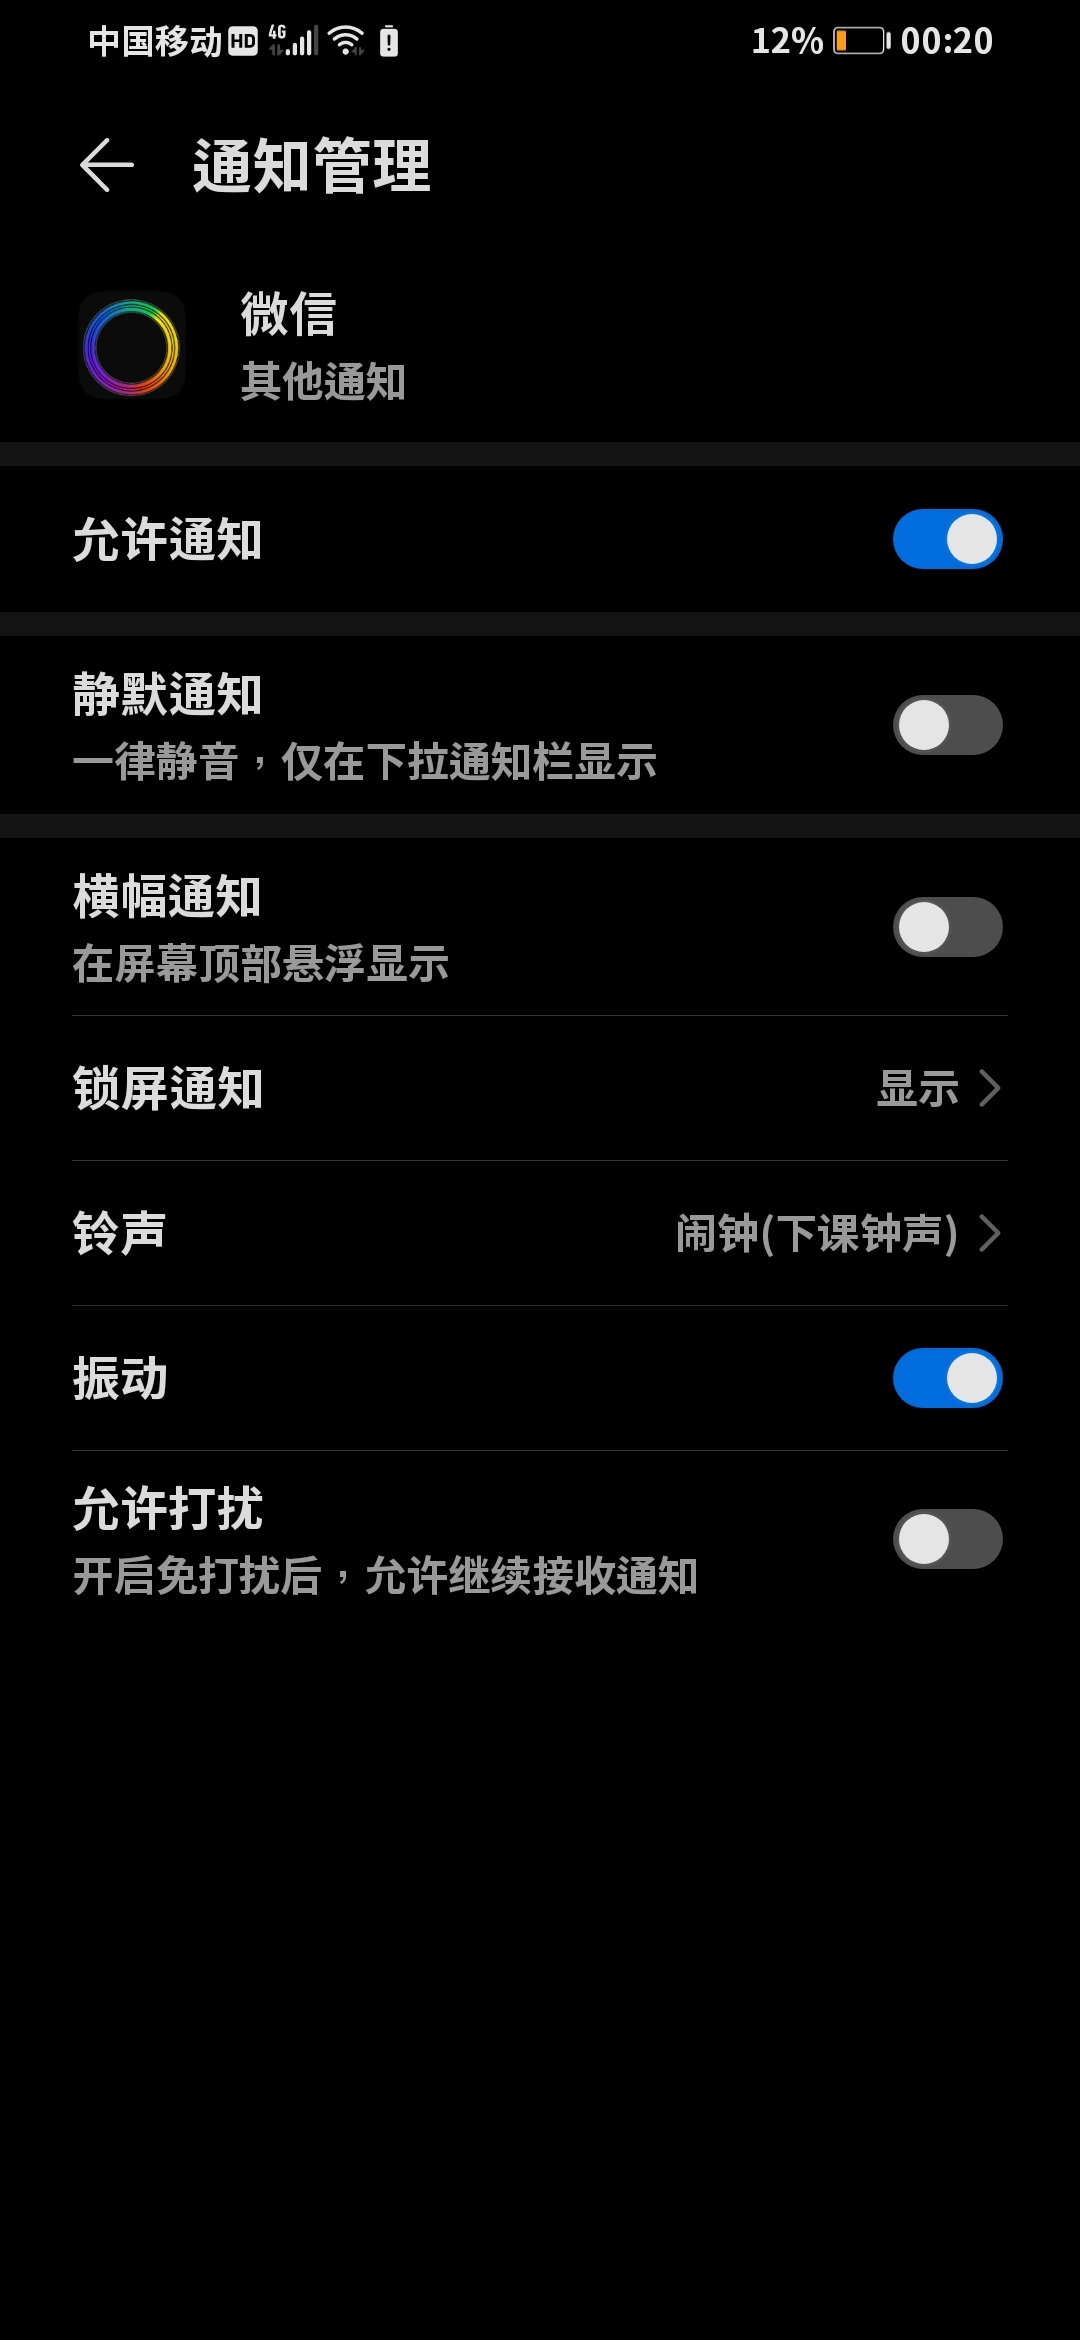 Screenshot_20200523_002043_com.huawei.systemmanager.jpg